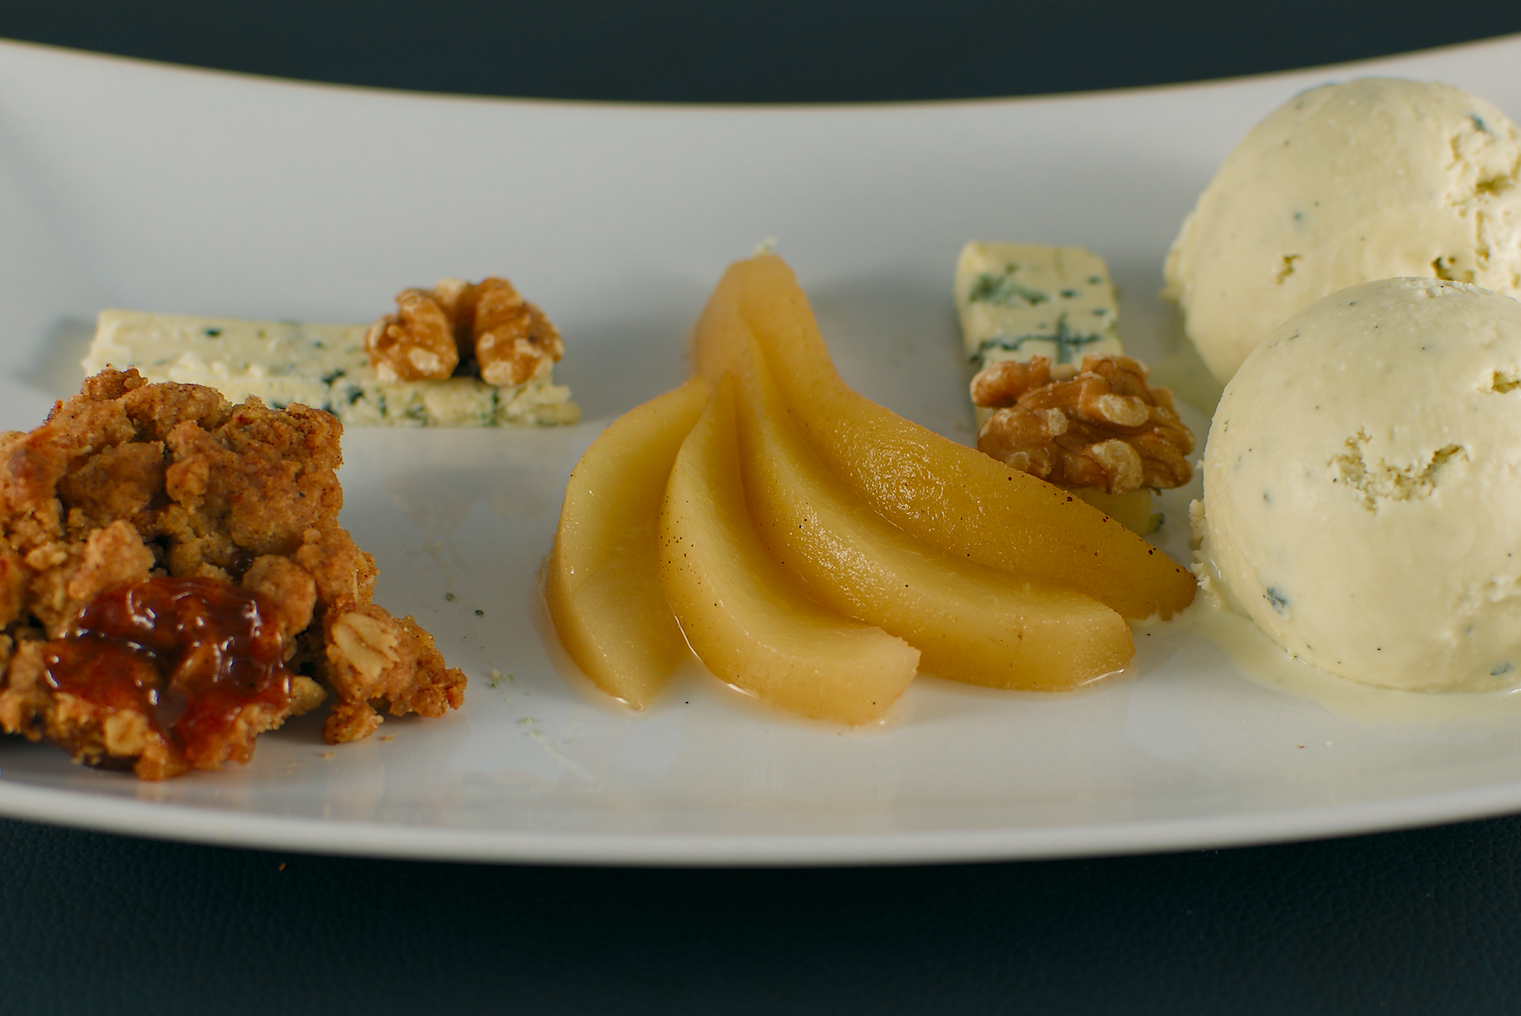 Blue-Cheese-Icecream | eingelegte Birne | Birnen Crumble | Blauschimmekäse